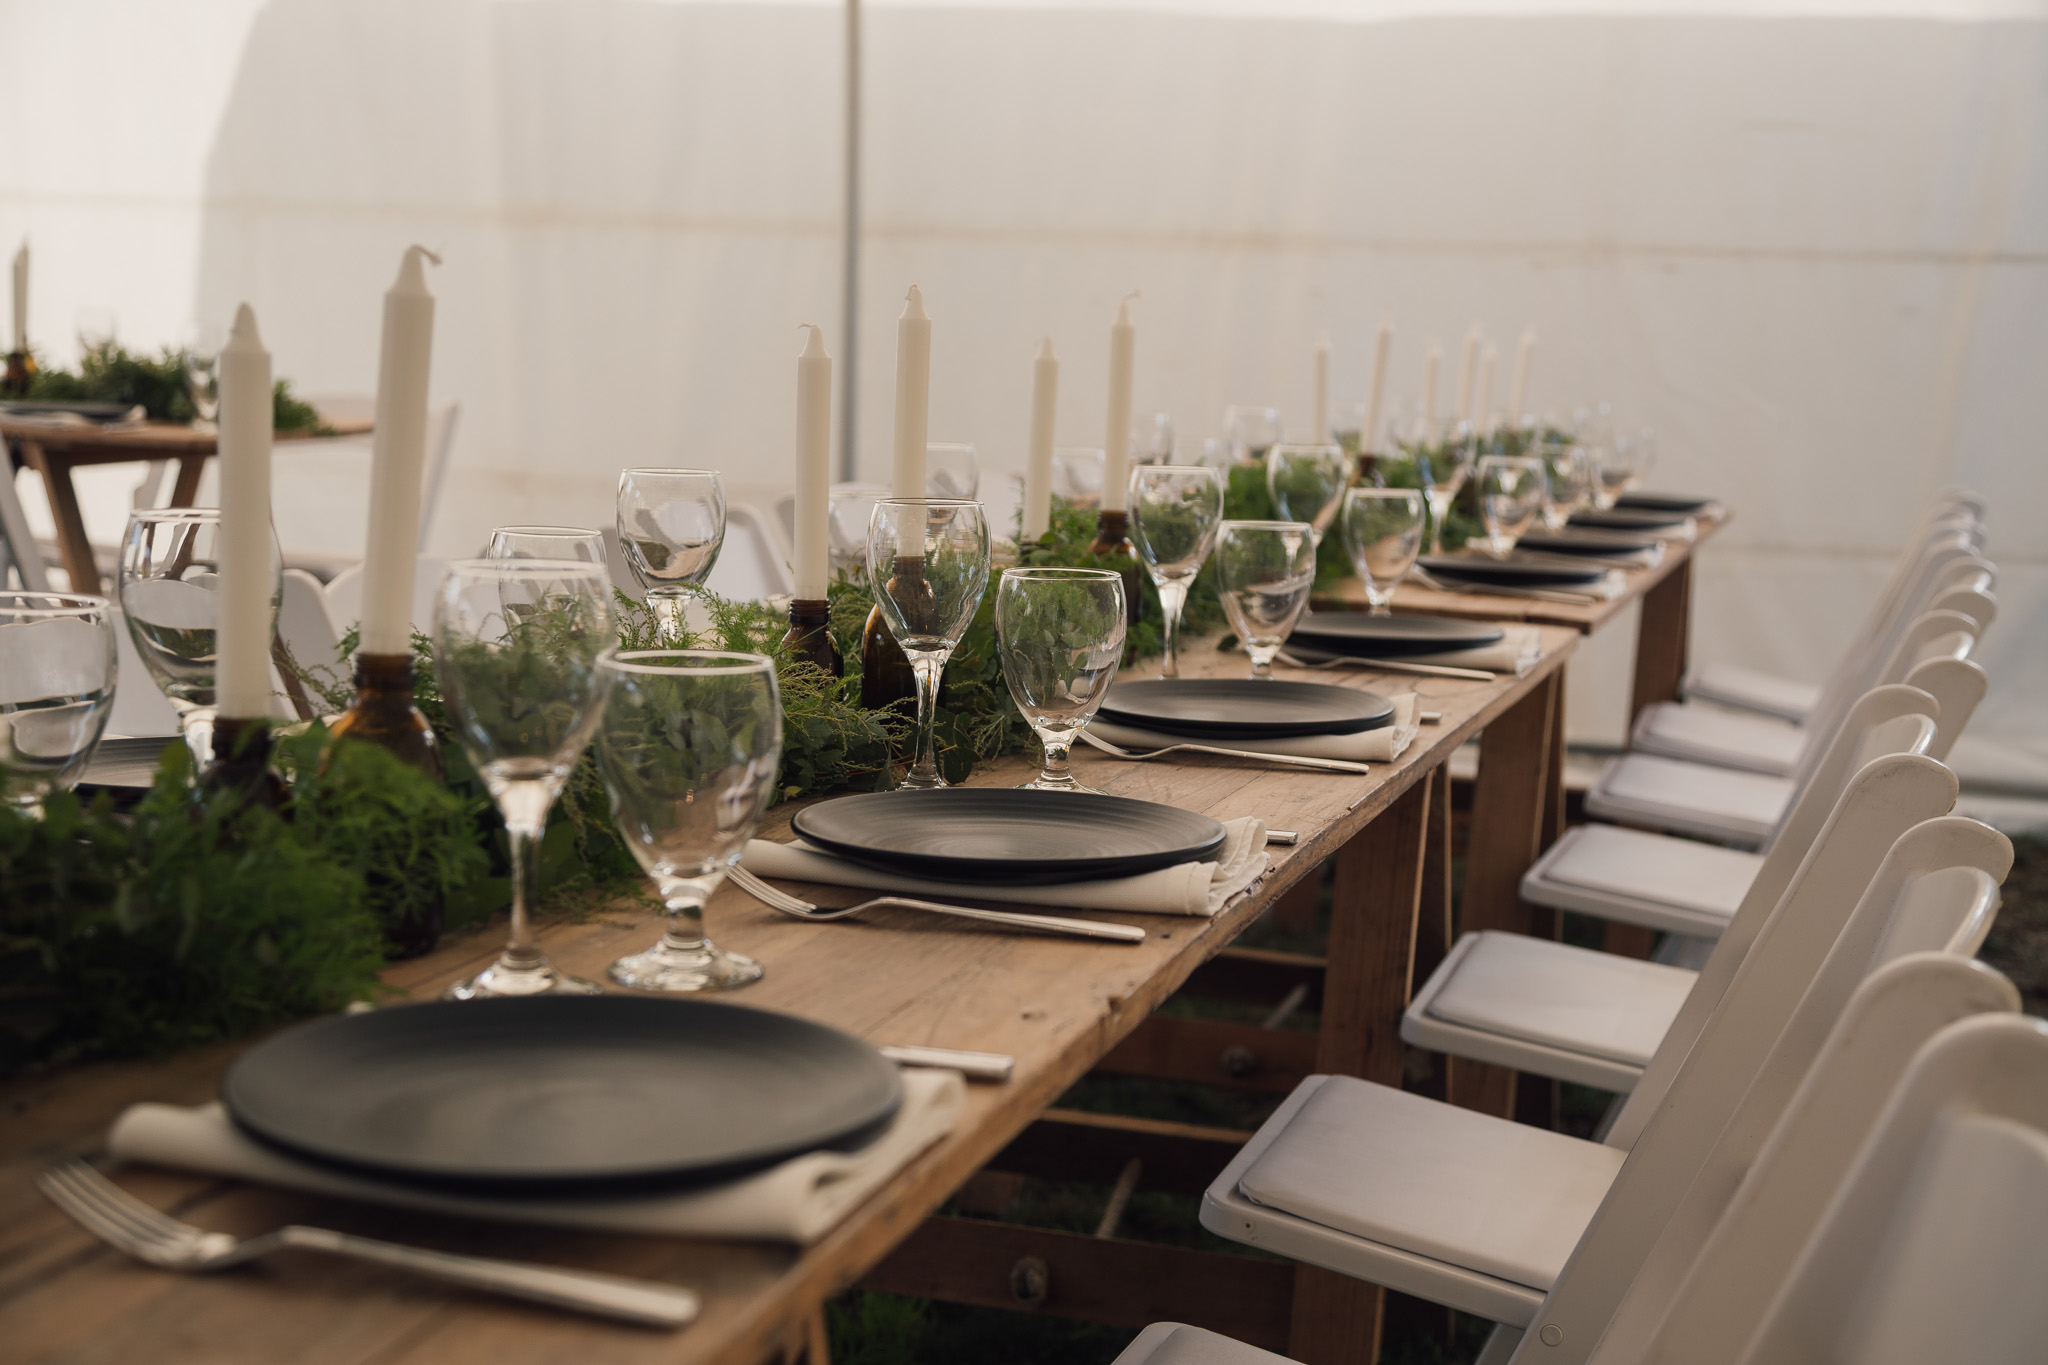 Rustic 2.4 & White Padded Chairs